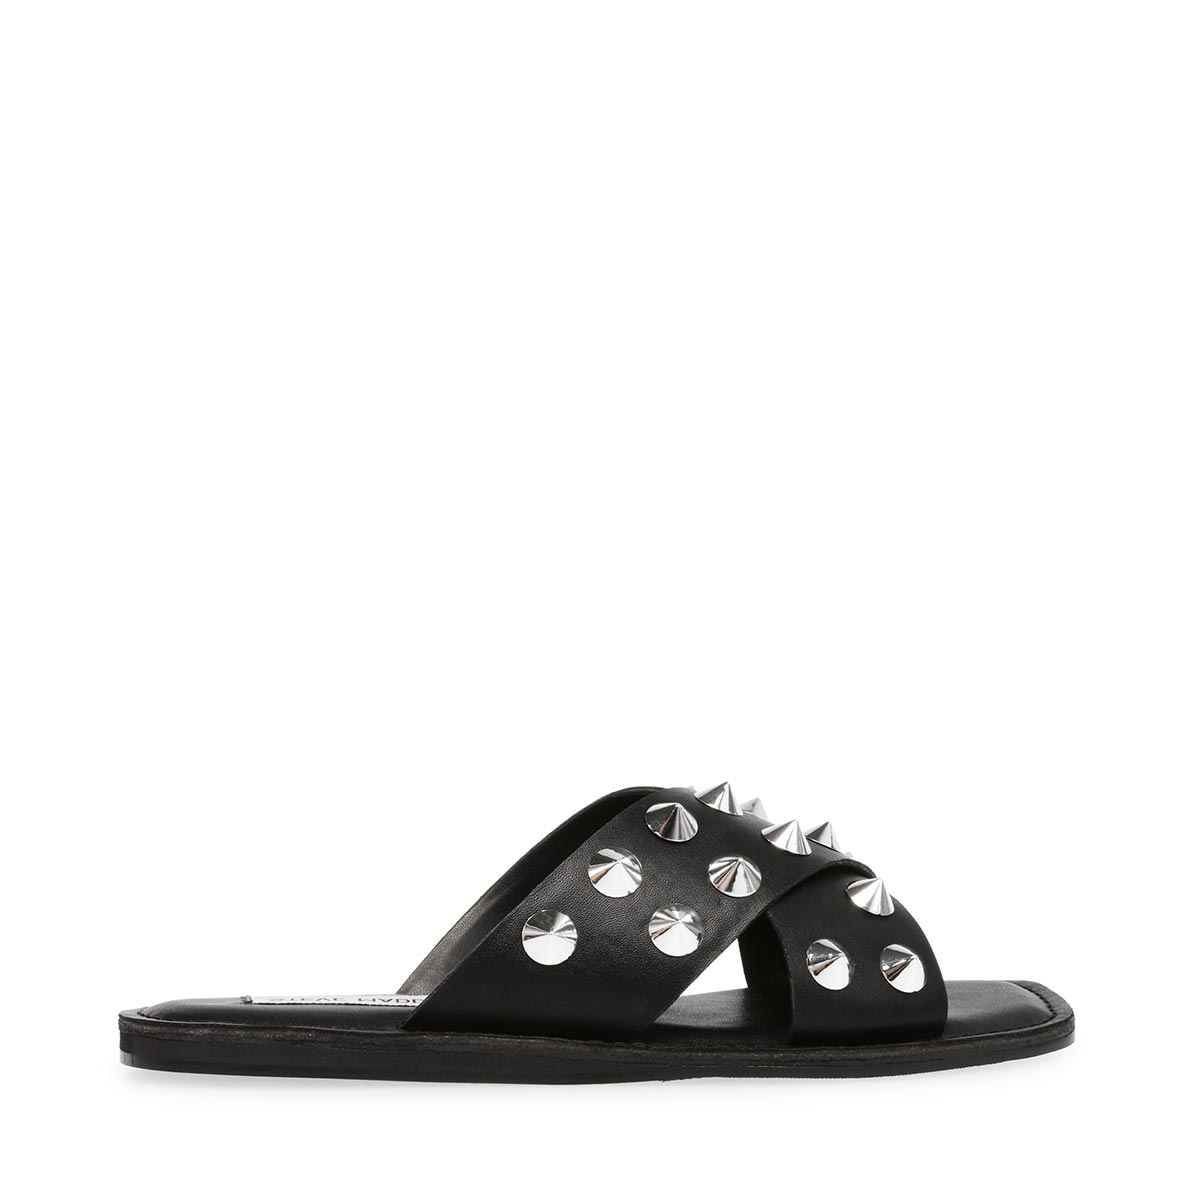 Steve Madden Leathers SPIKEY STUDDED SLIPPERS